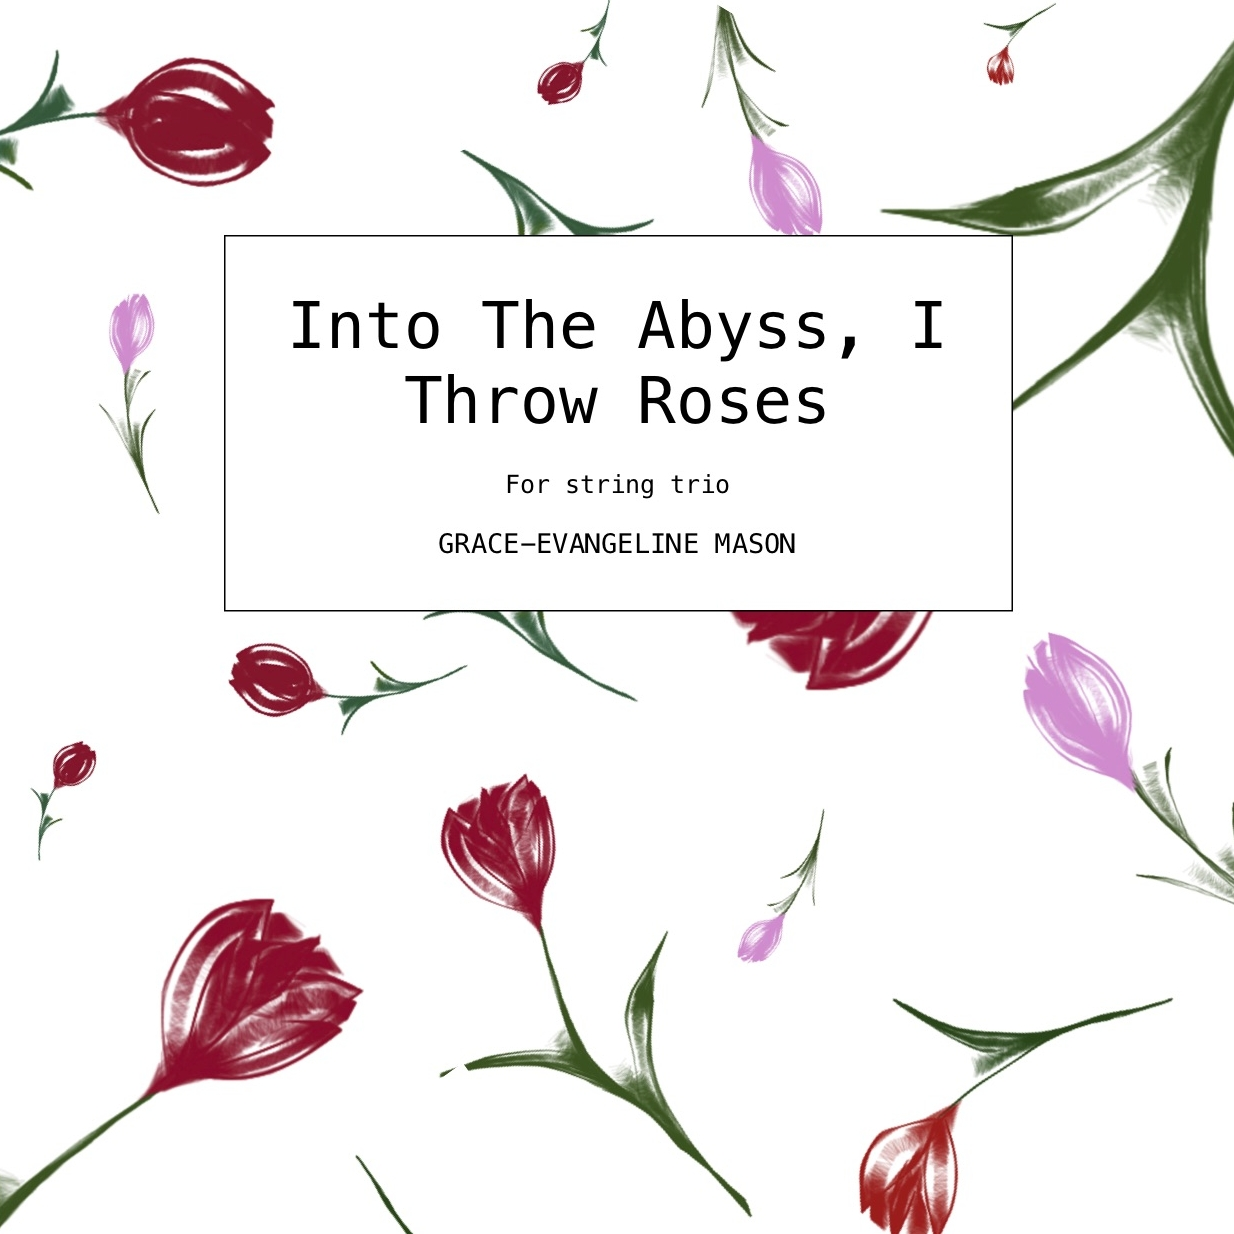 Into The Abyss, I Throw Roses (2018)